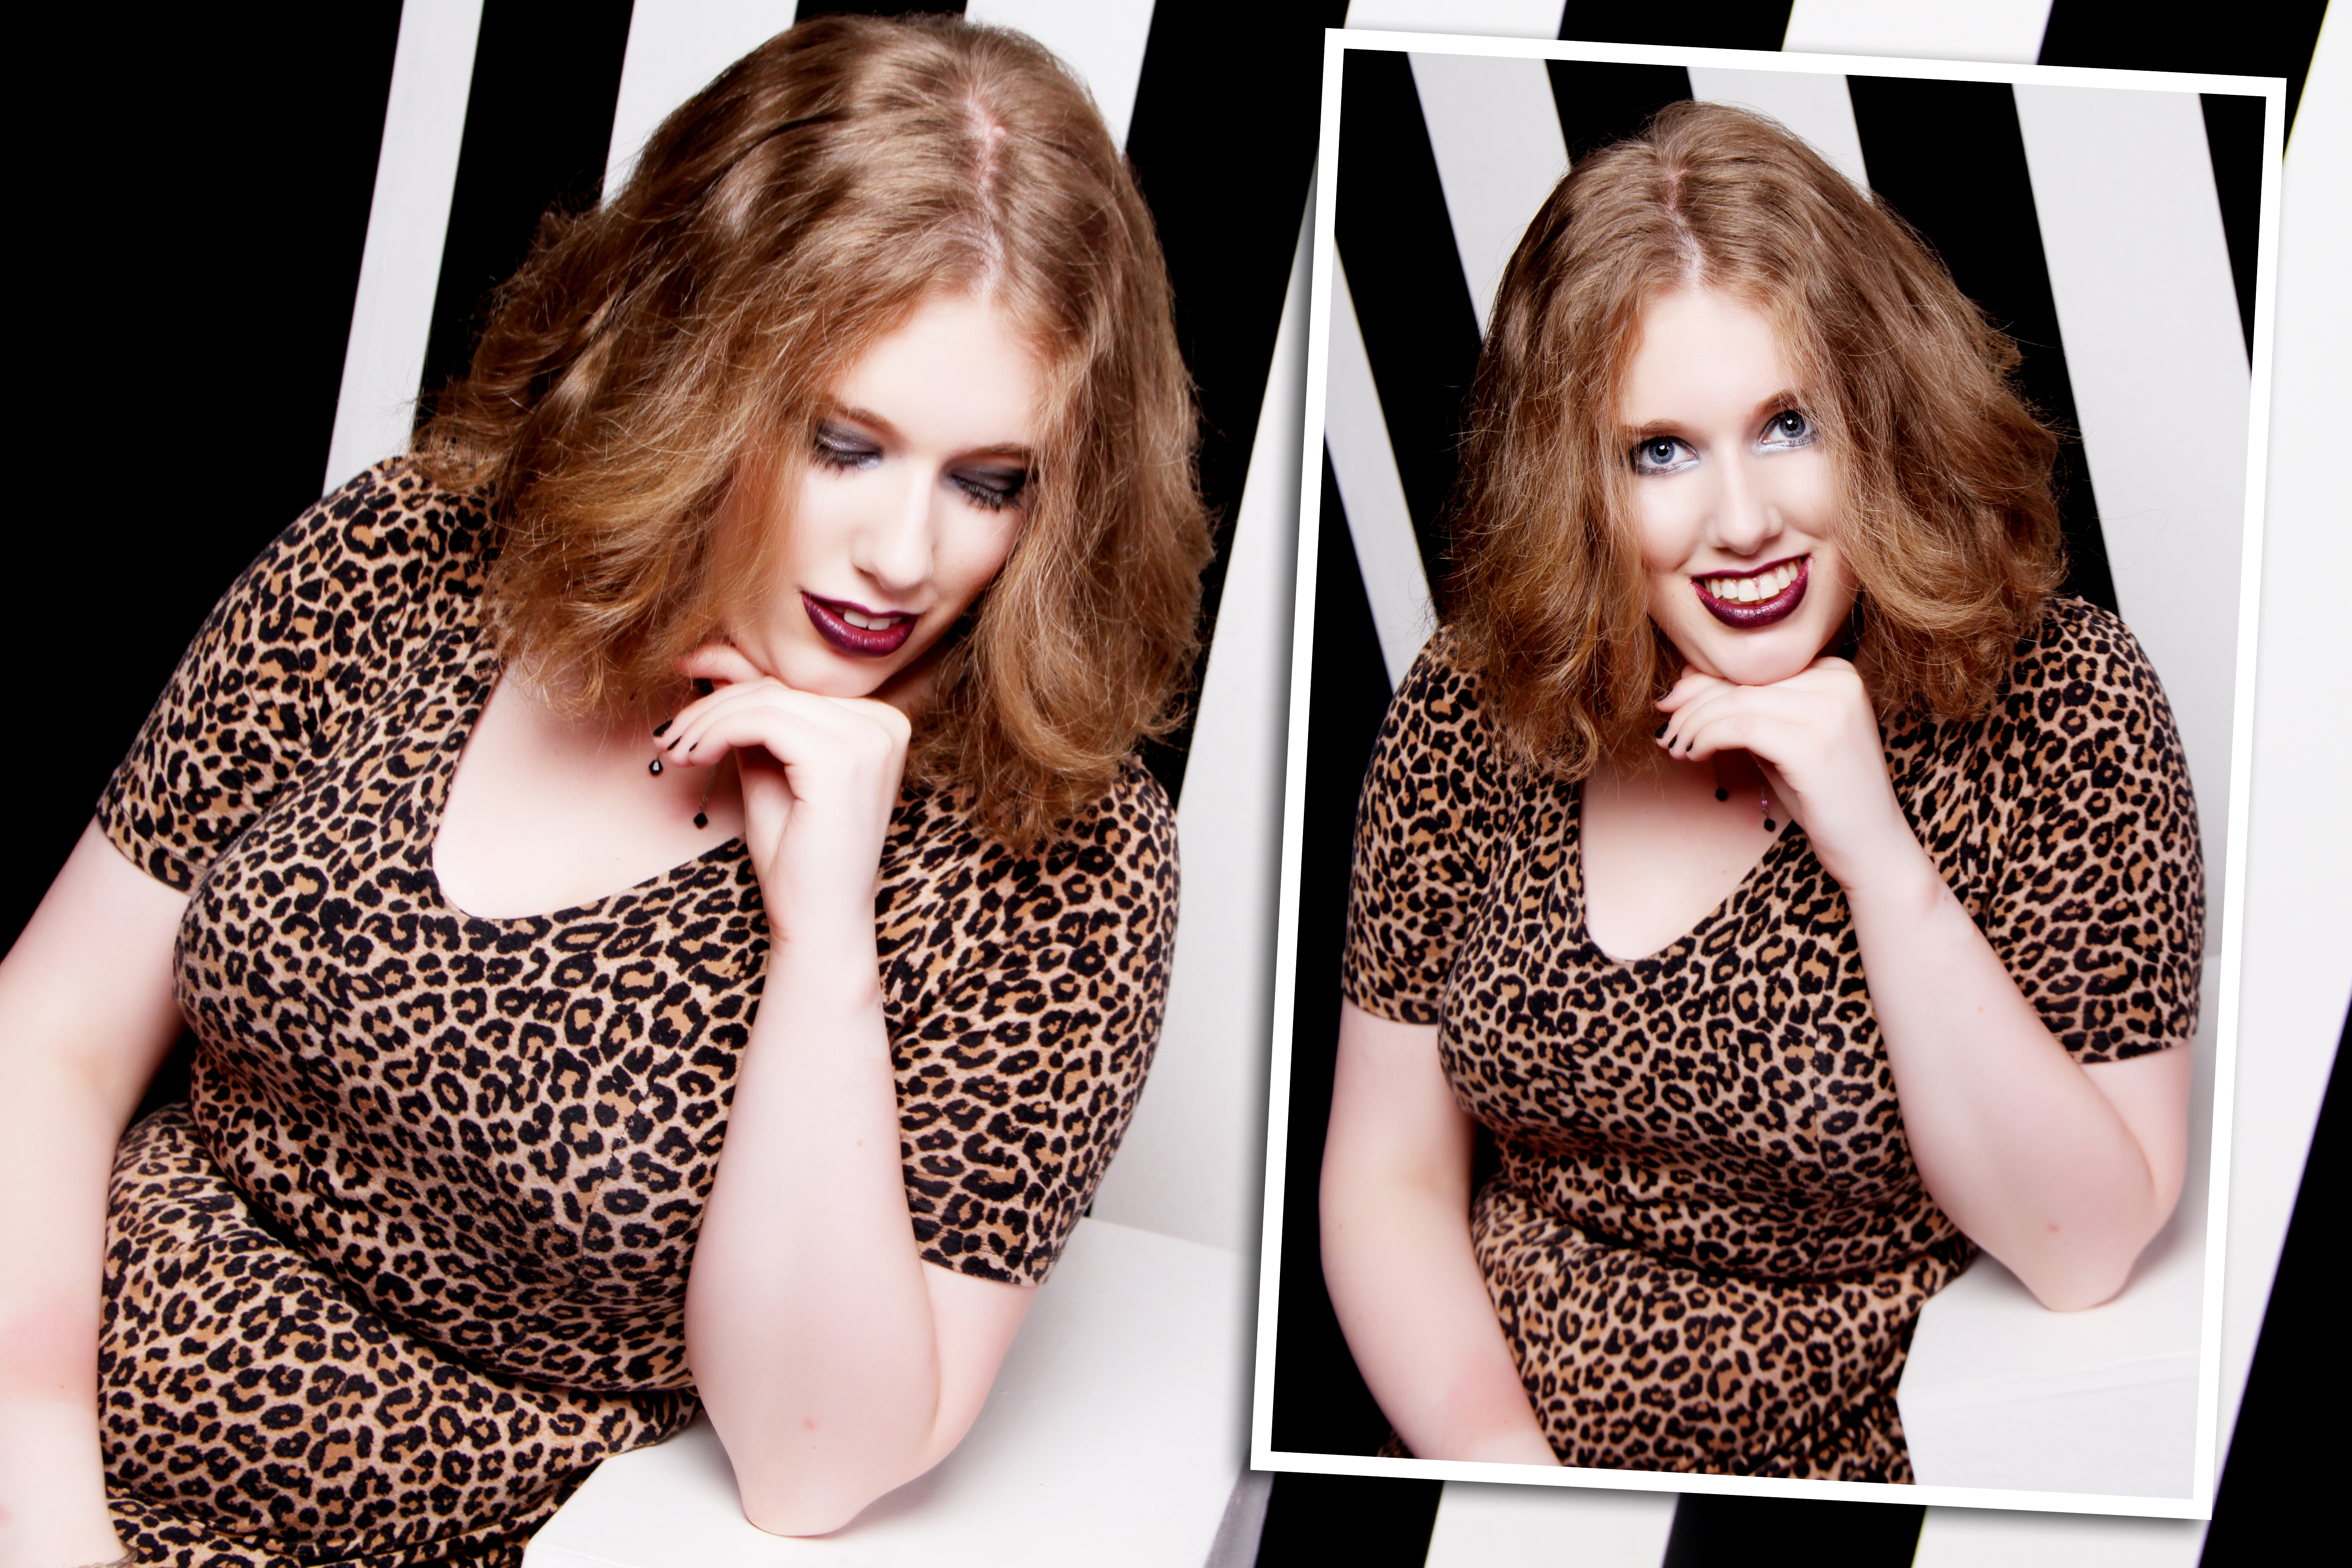 Taken from a professional photo shoot. I'm wearing a leopard print dress with a fitted top & short sleeves, and a thin black belt at my waist. My hair is loose. On the left I'm looking down, & on the right I'm looking at the camera.